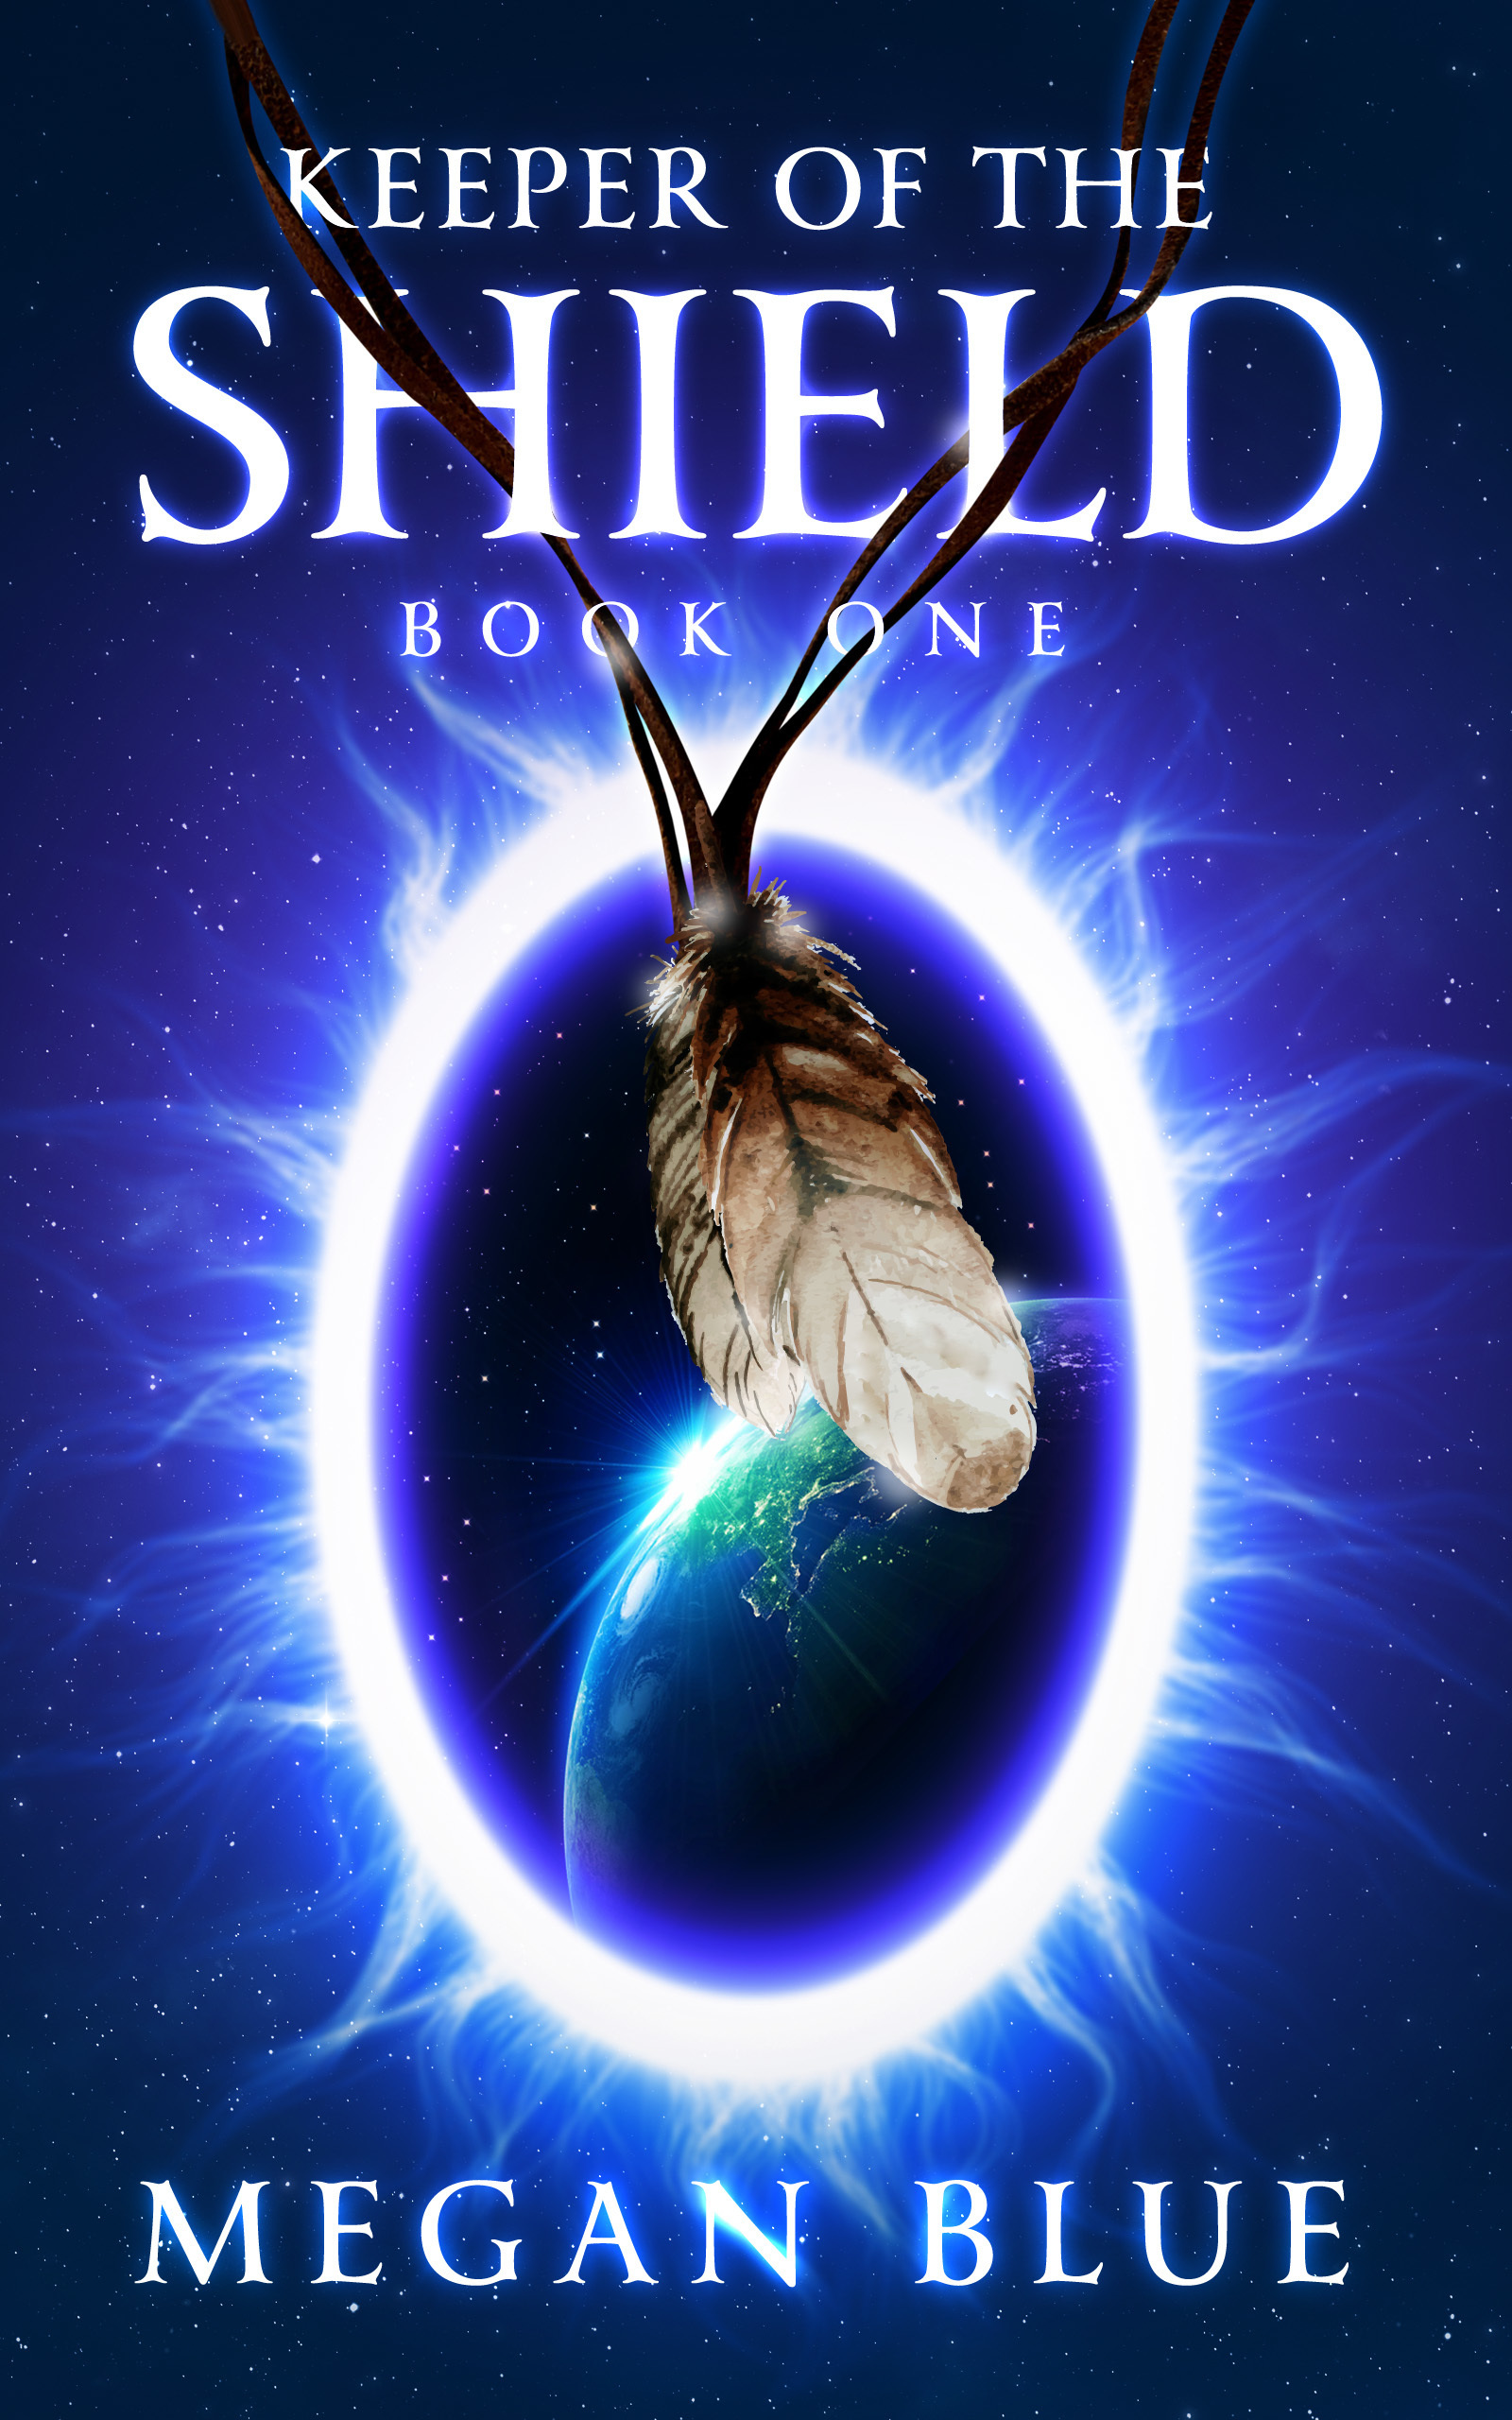 Keeper of the Shield, Book One  by  Megan Blue